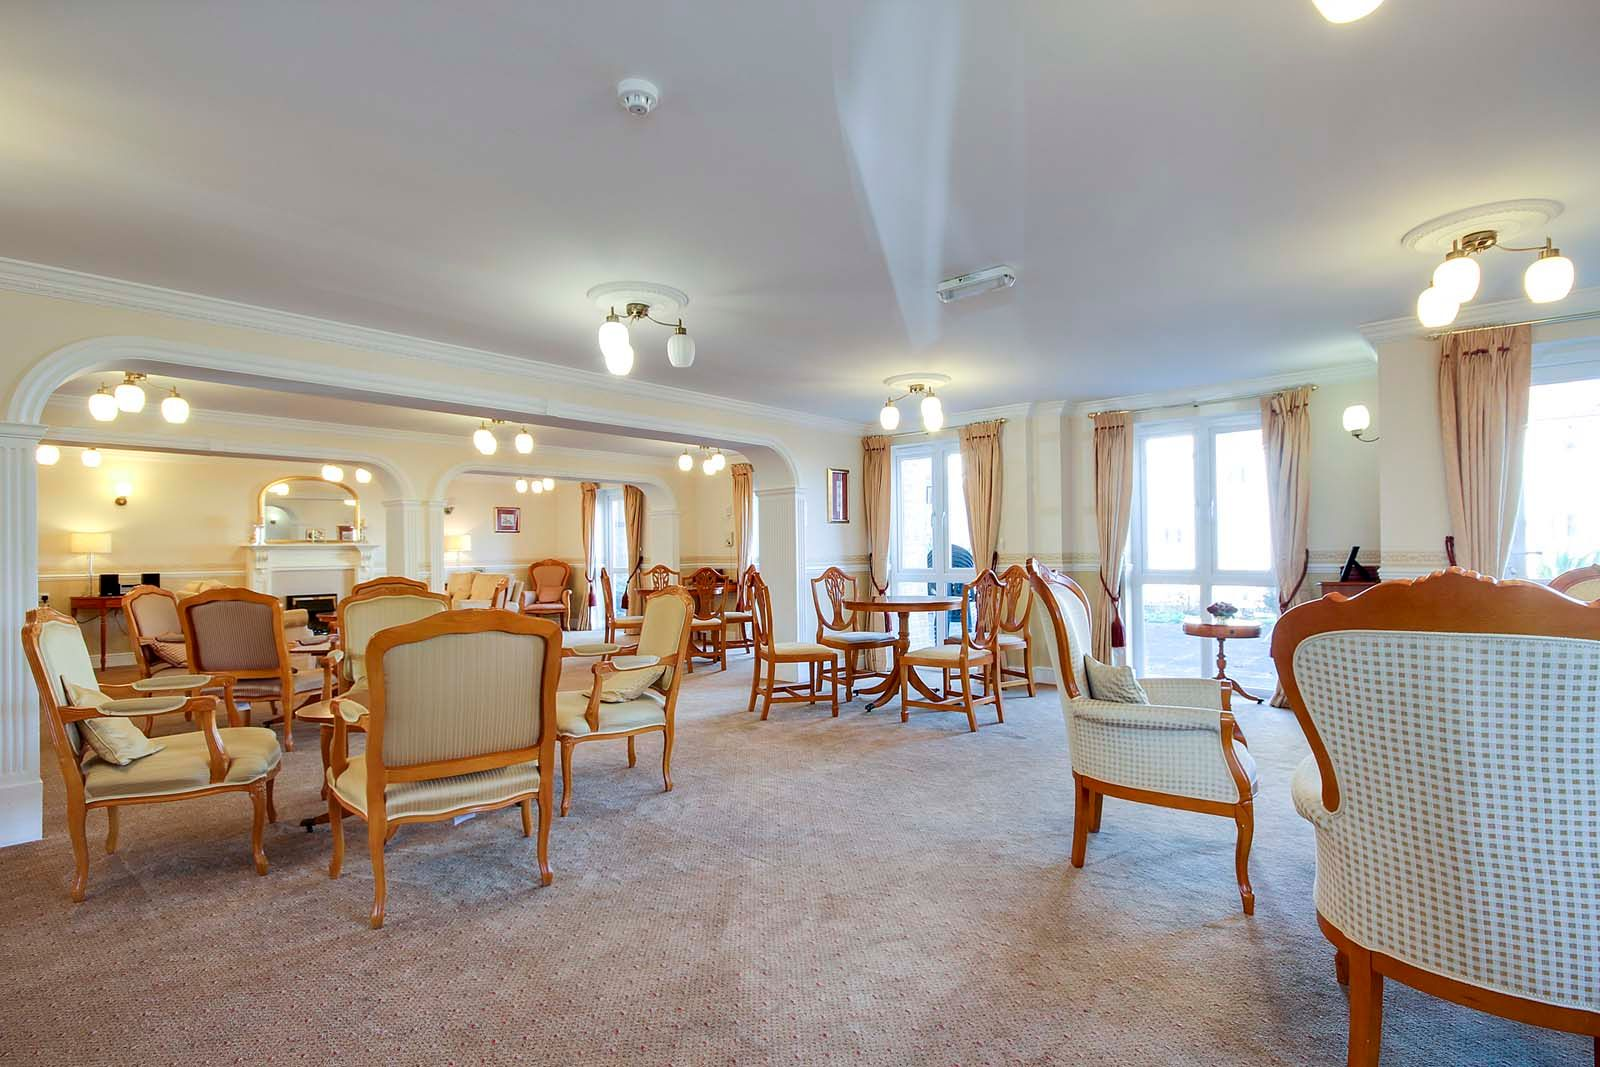 2 bed for sale in East Preston - Communal lounge (Property Image 9)